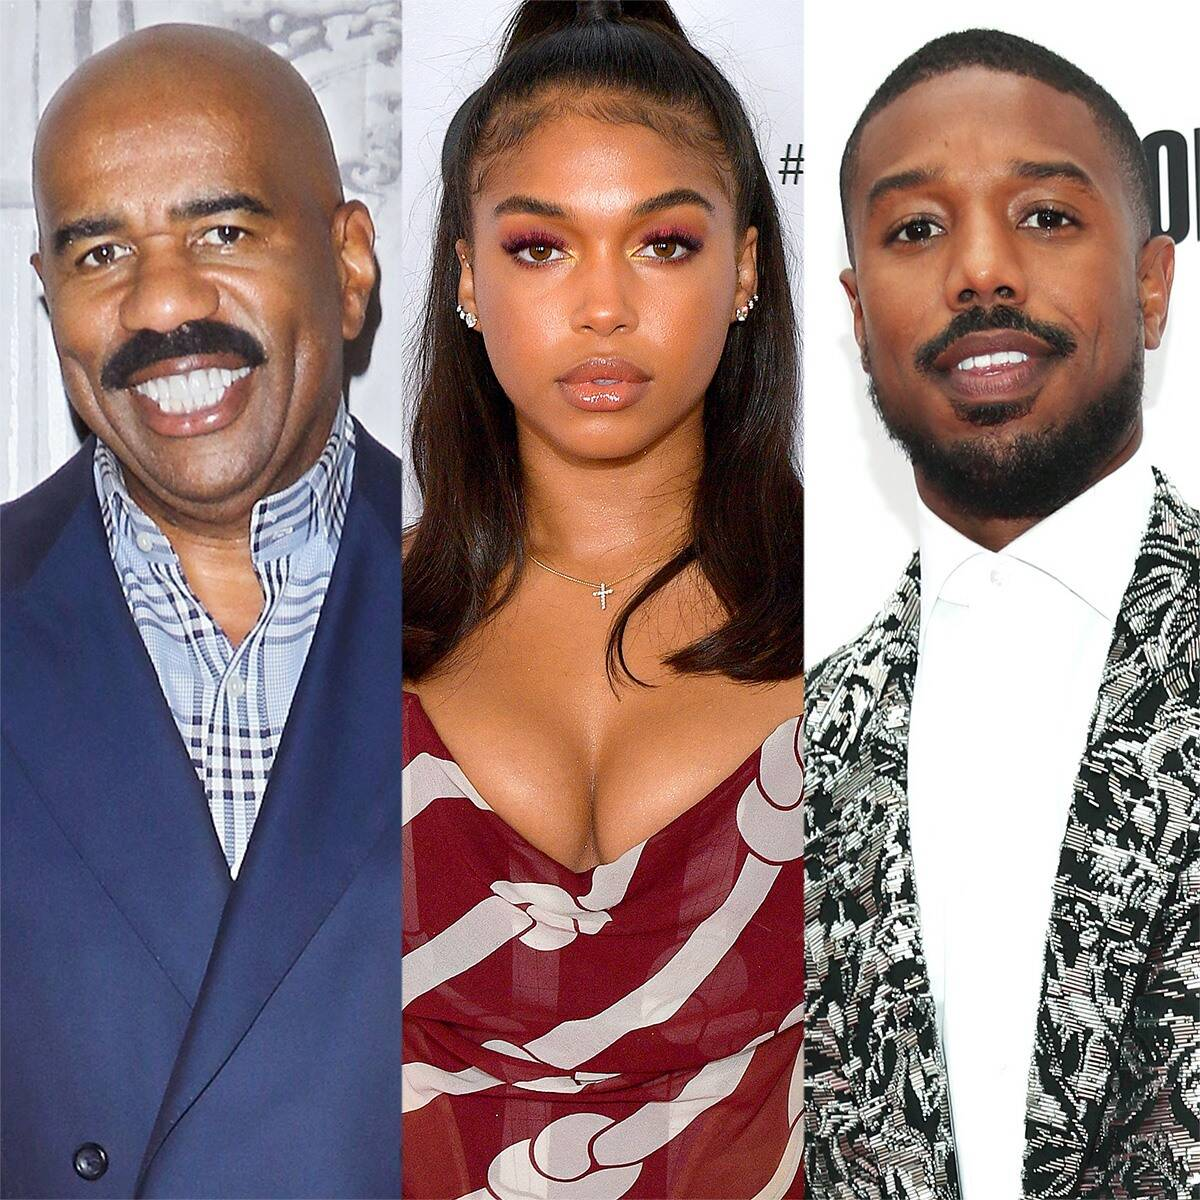 steve-harvey-says-he-really-tried-to-find-something-wrong-with-michael-b-jordan-but-couldnt